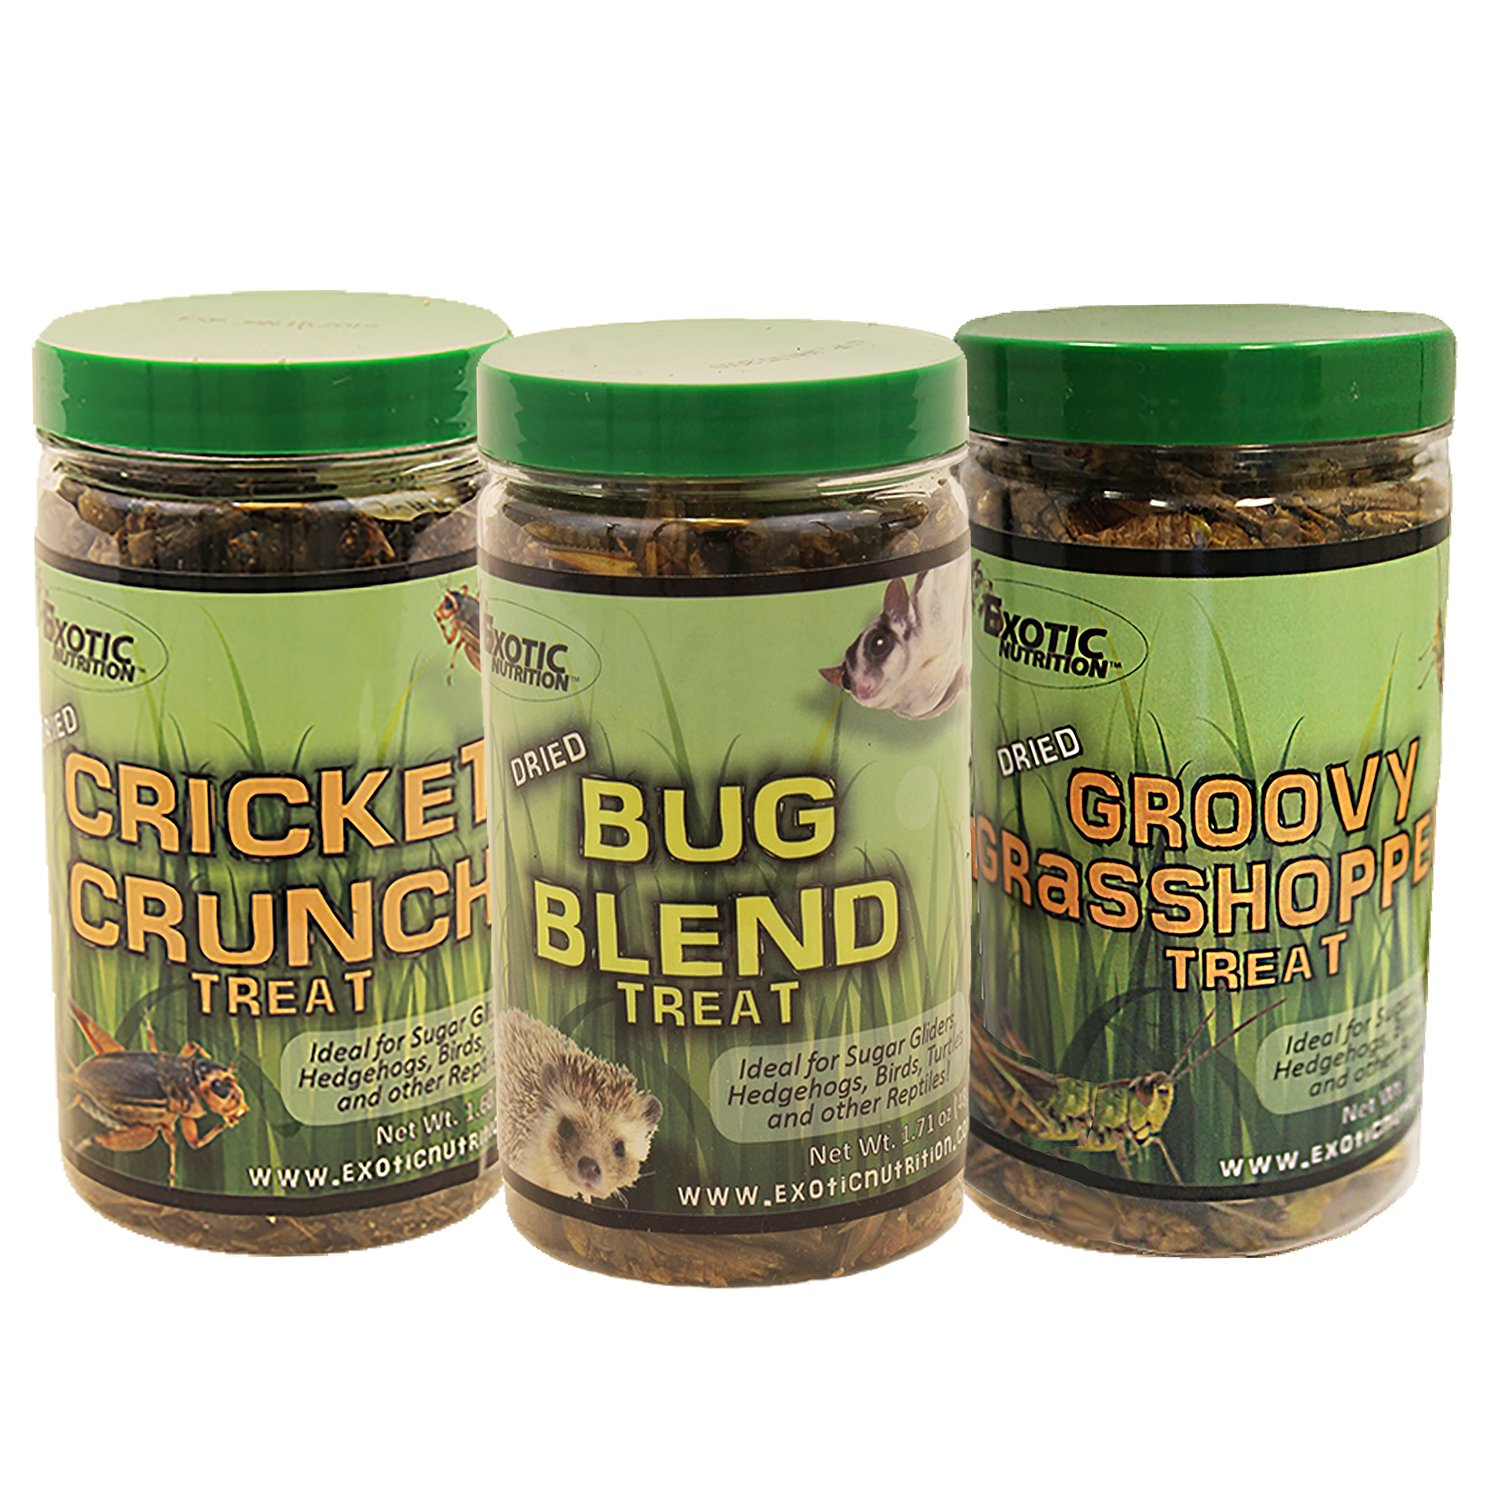 Exotic Nutrition Dried Insect 3 Pack - Crickets, Grasshoppers, Mealworms